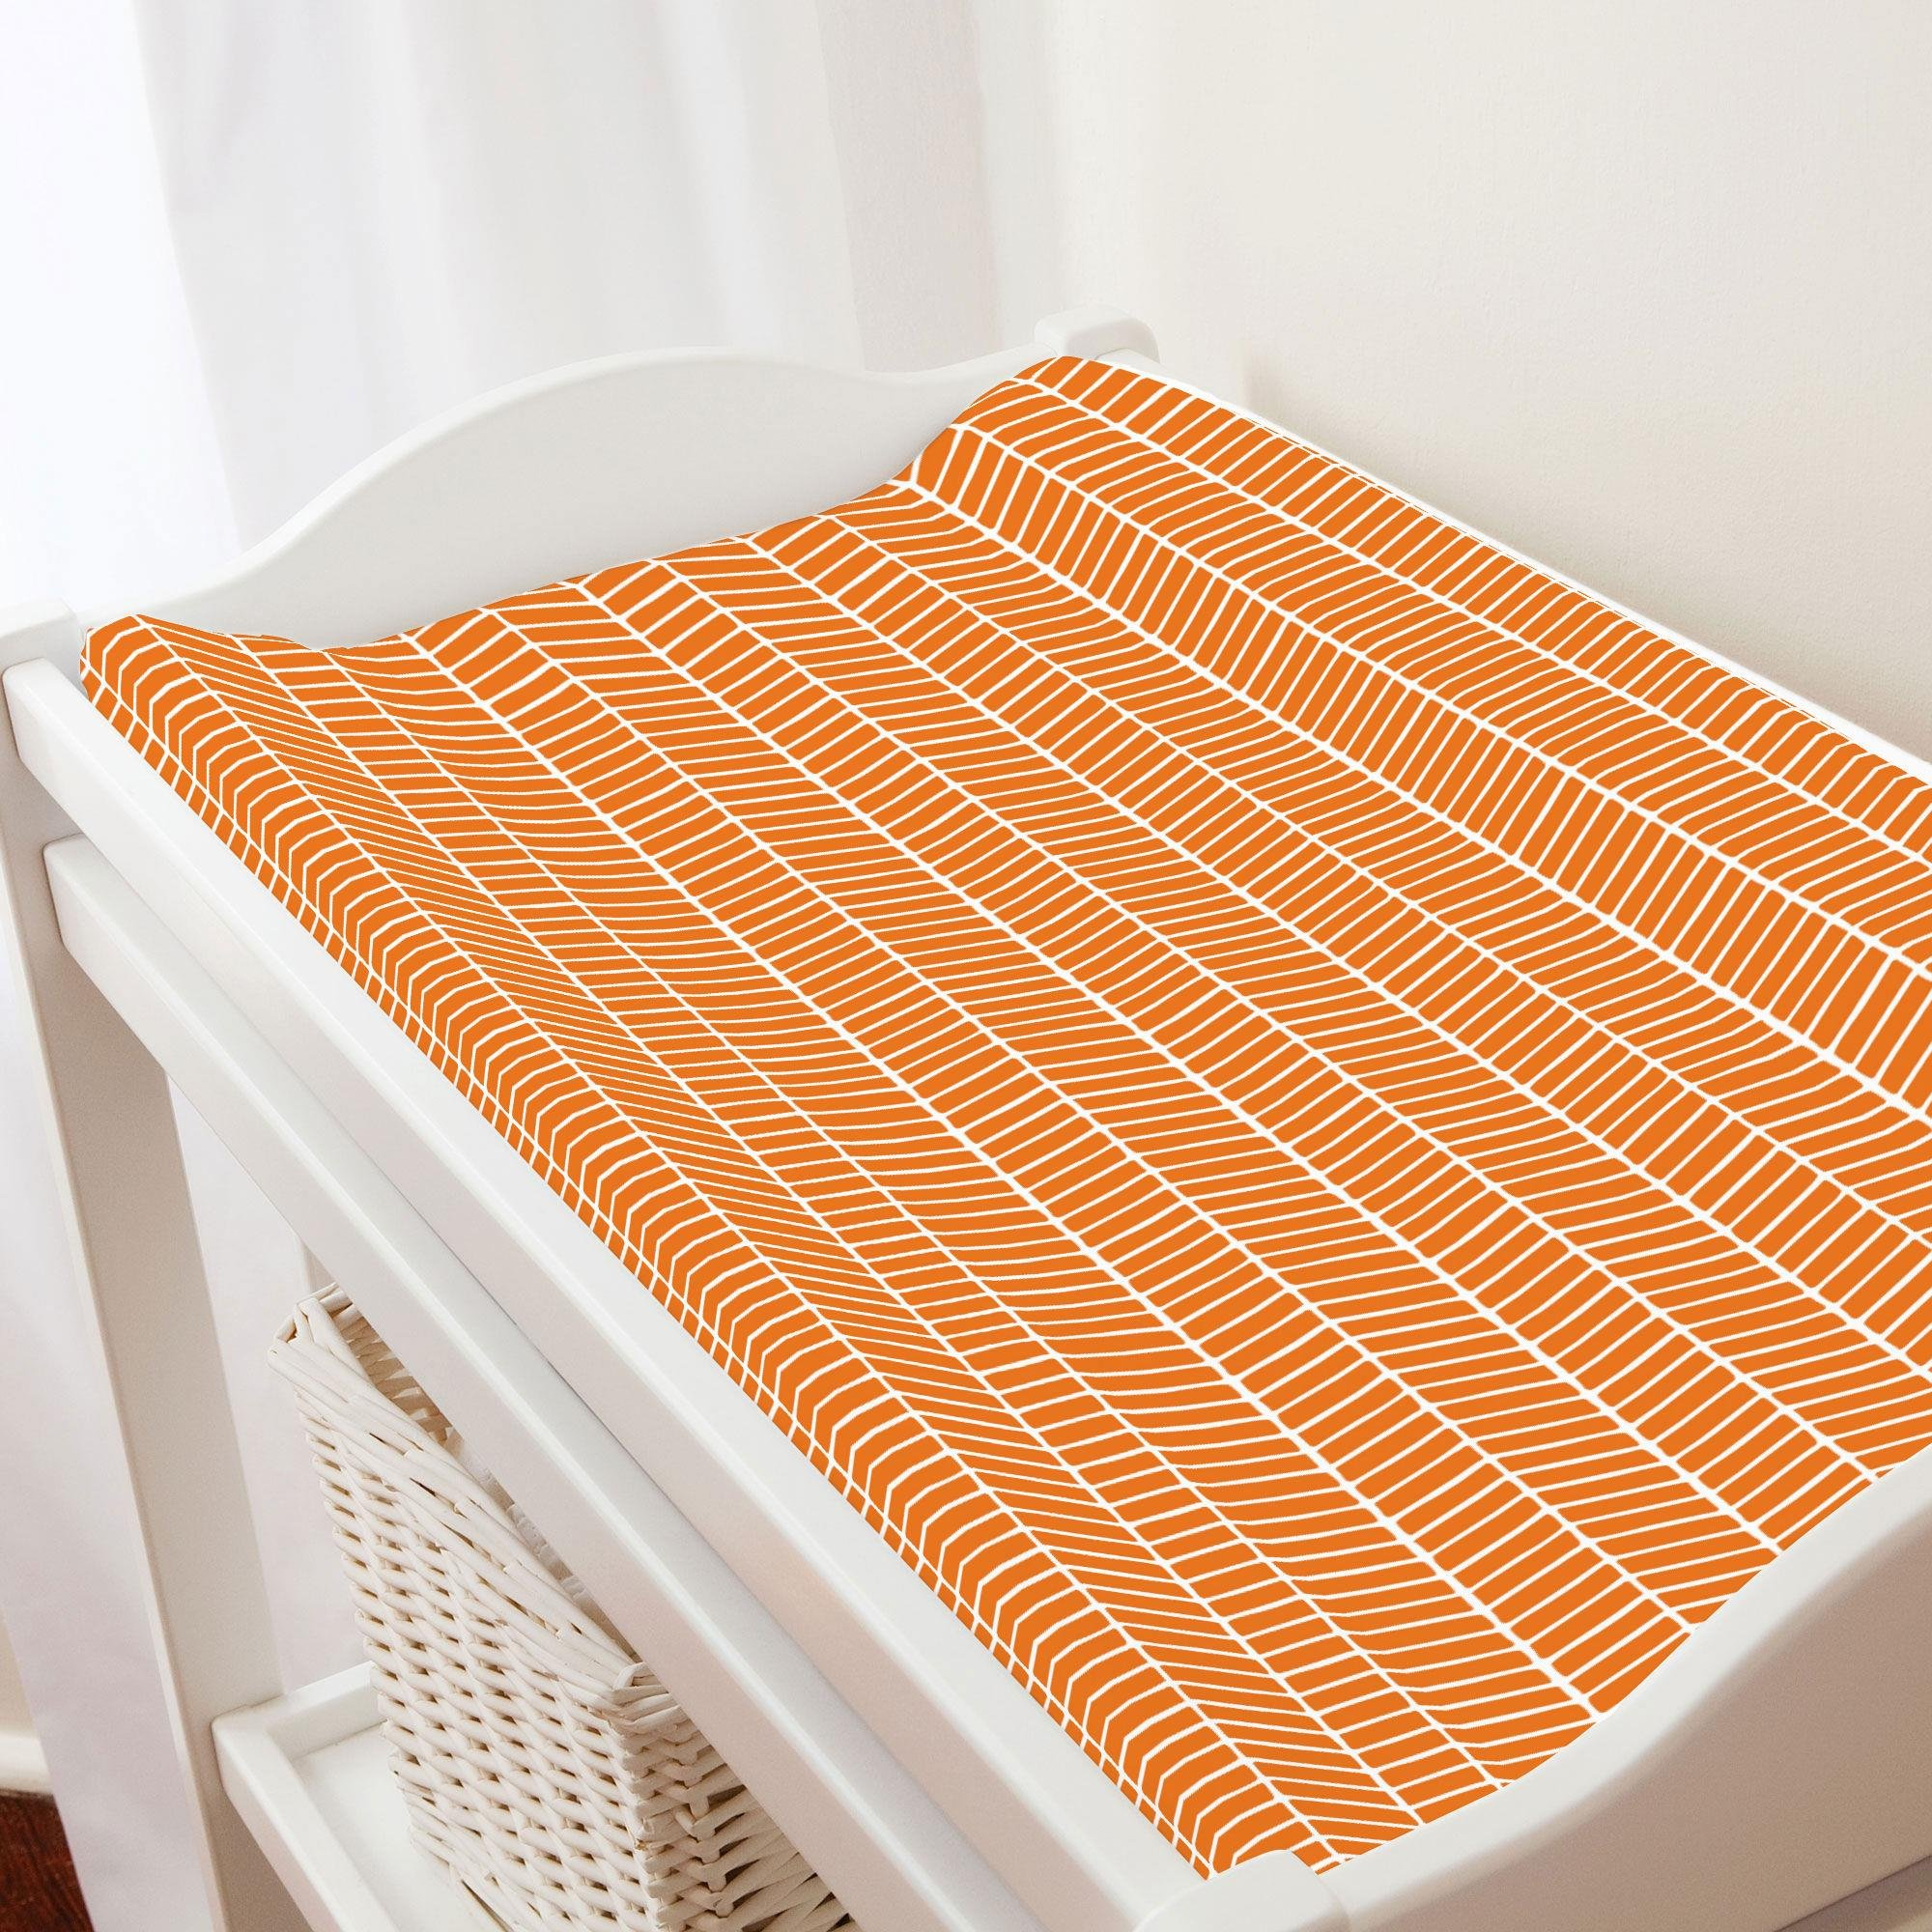 Carousel Designs Orange Herringbone Changing Pad Cover - Organic 100% Cotton Change Pad Cover - Made in The USA